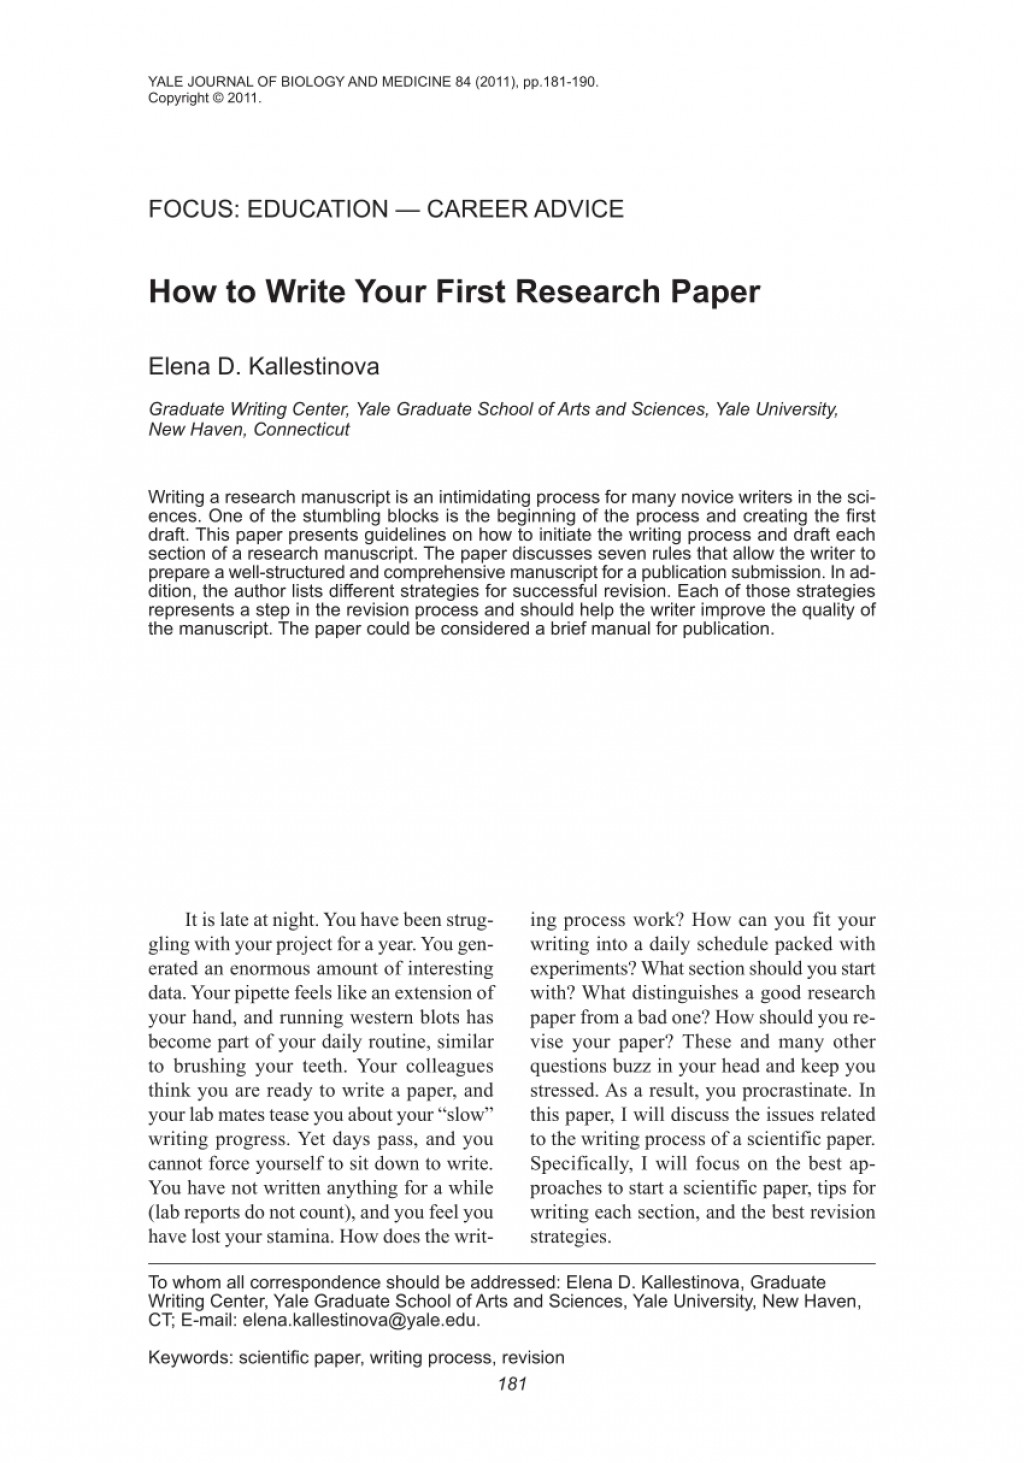 010 Research Paper Staggering A Writing Format Title Of Thesis Example Large